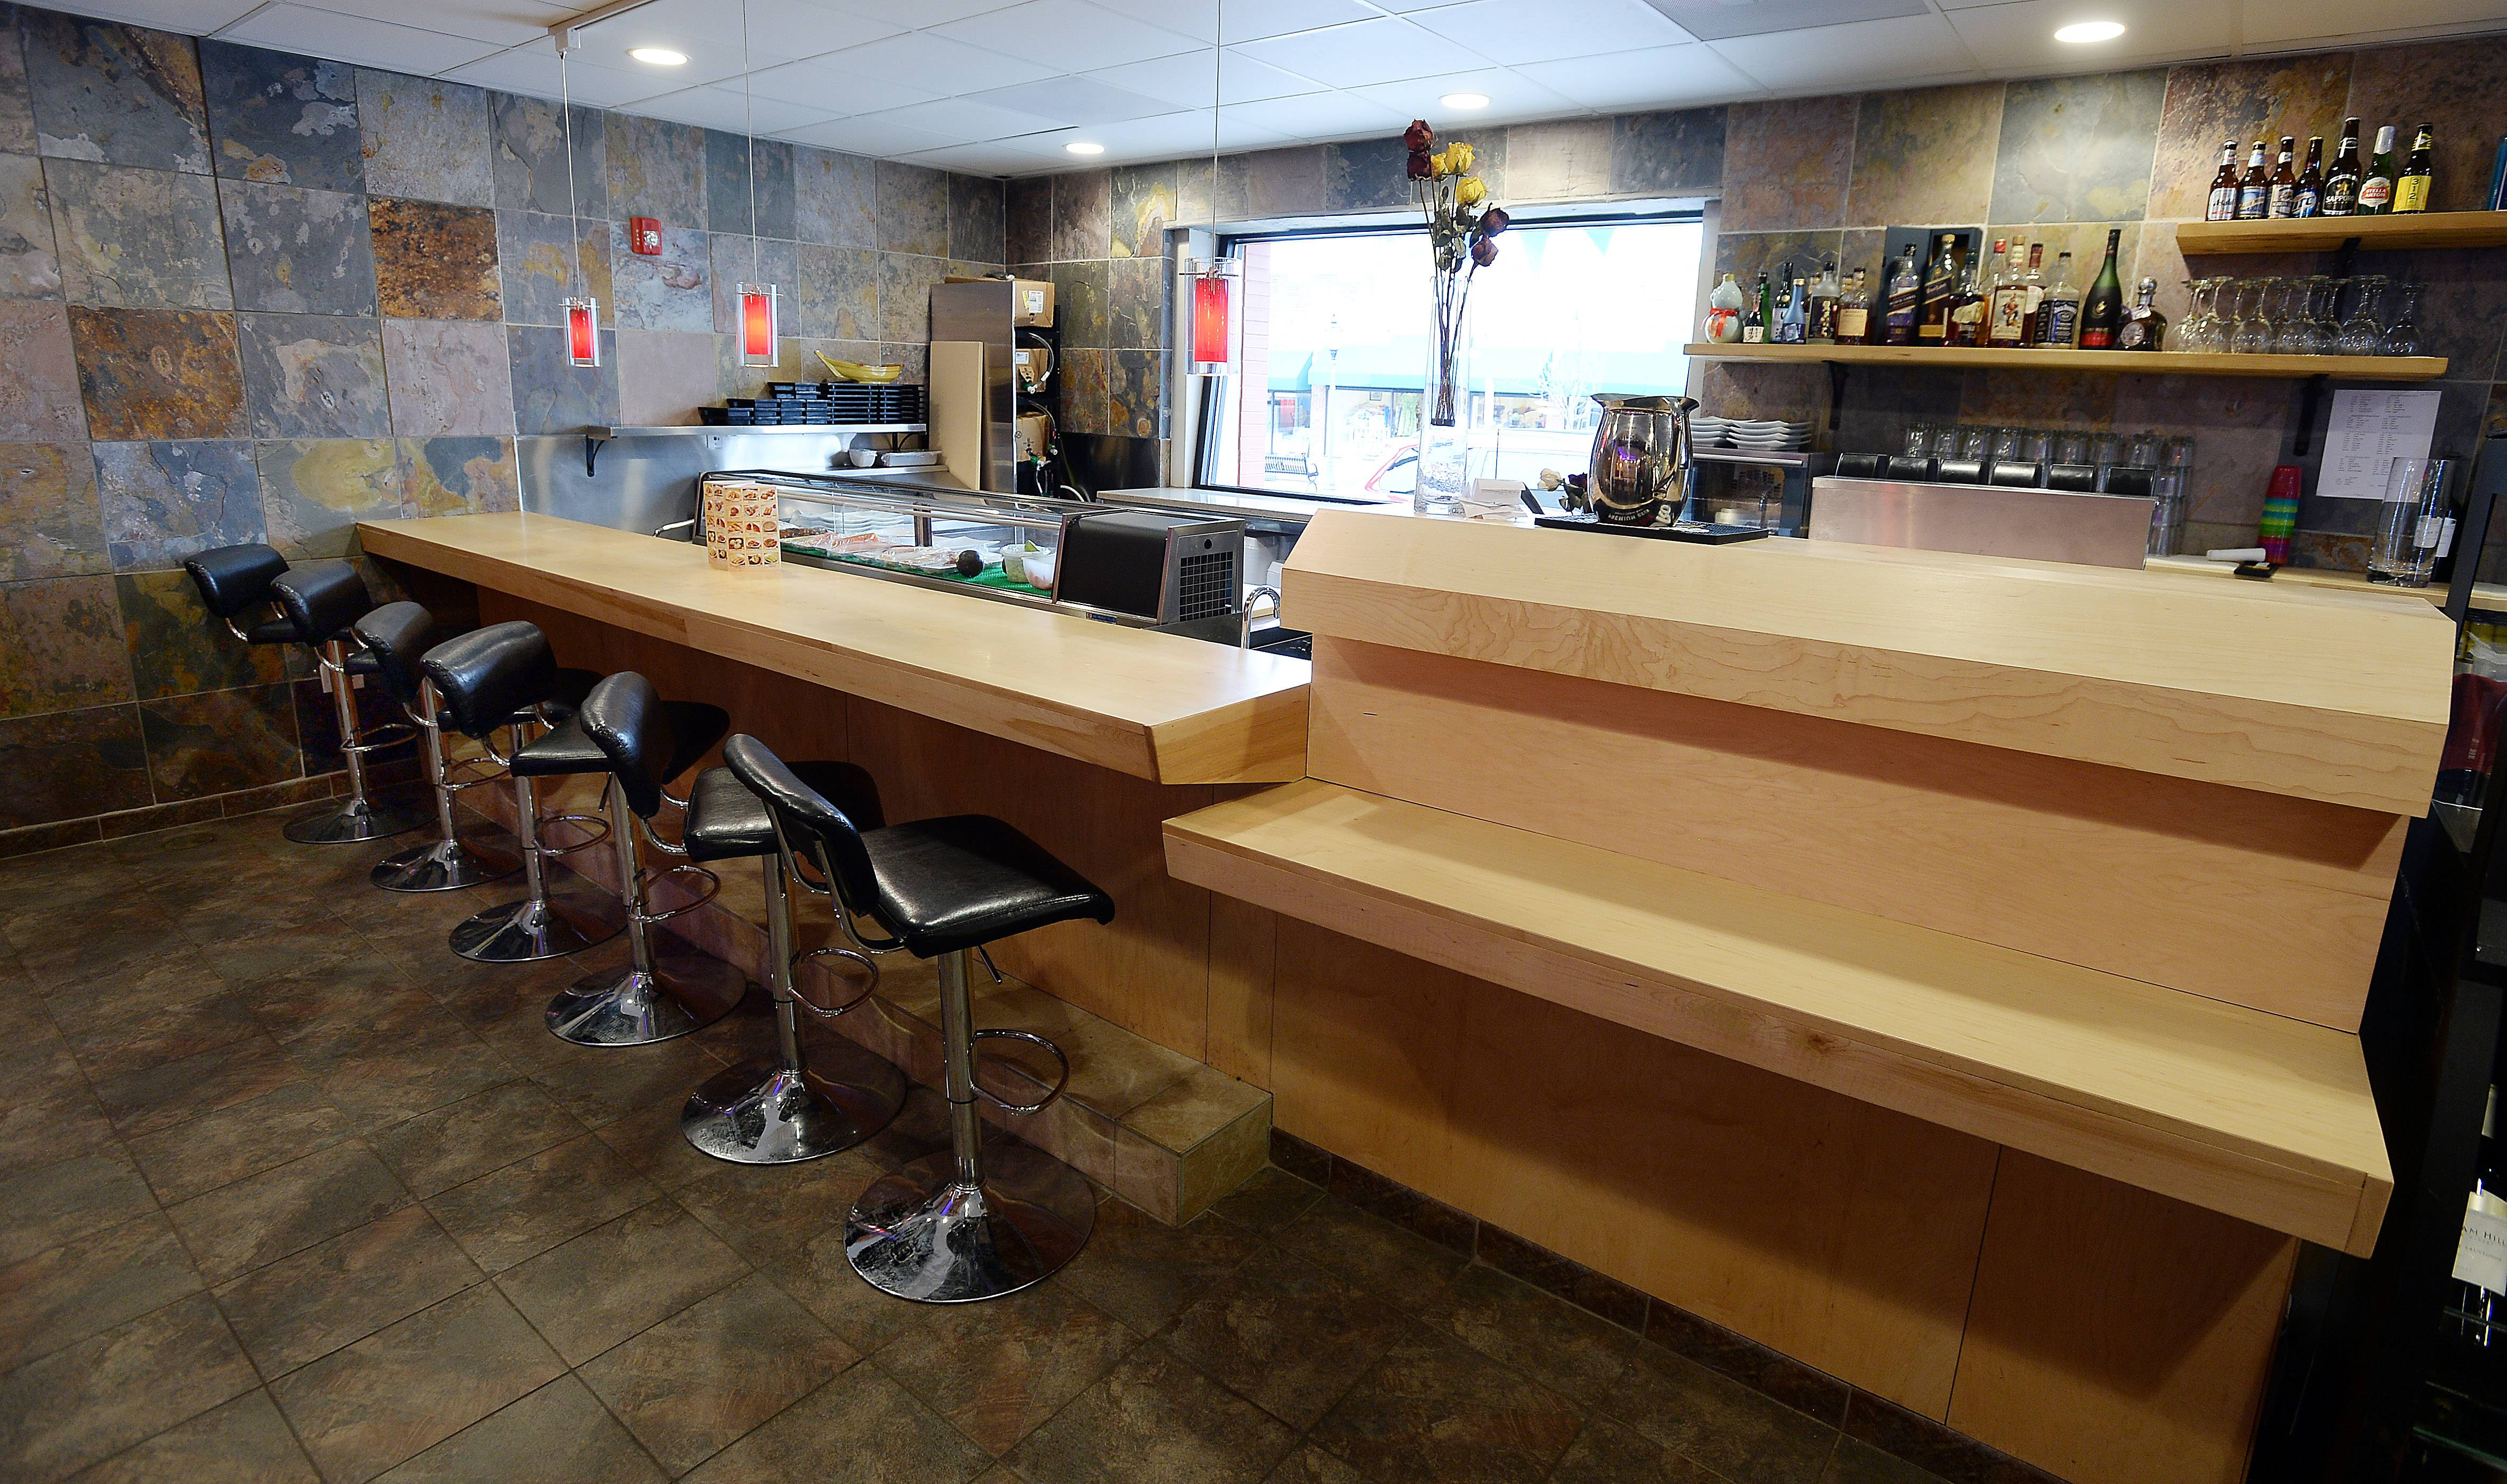 A sushi bar offers one seating option at Bistro Chen.